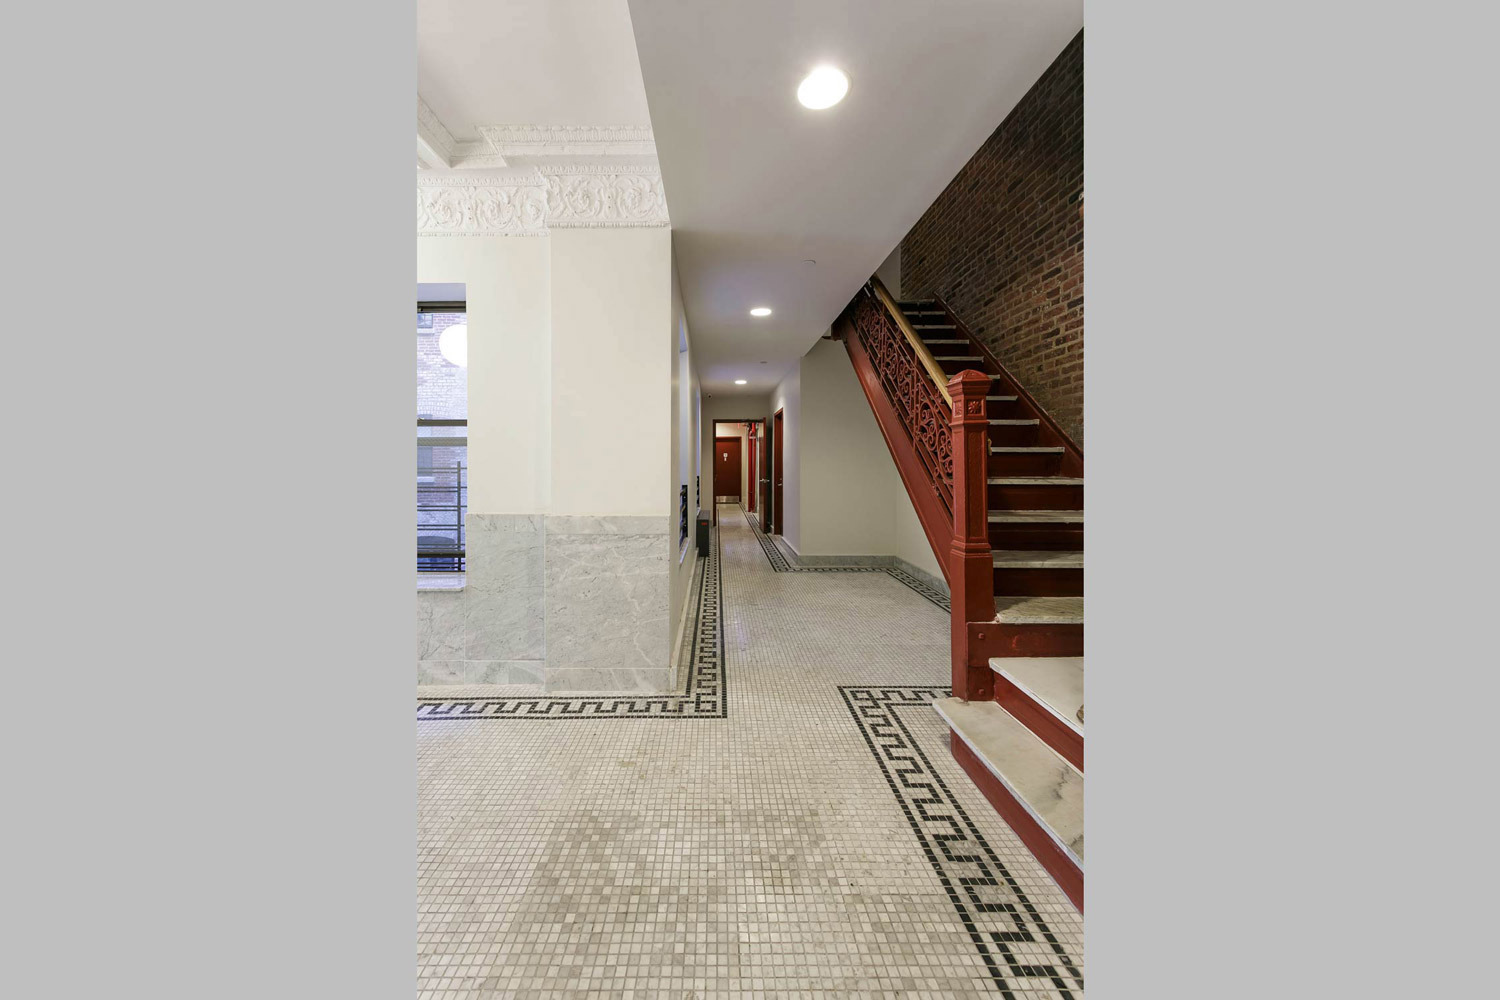 OCV executed a historic renovation of the lobby at this affordable housing building on St. Nicholas Avenue.